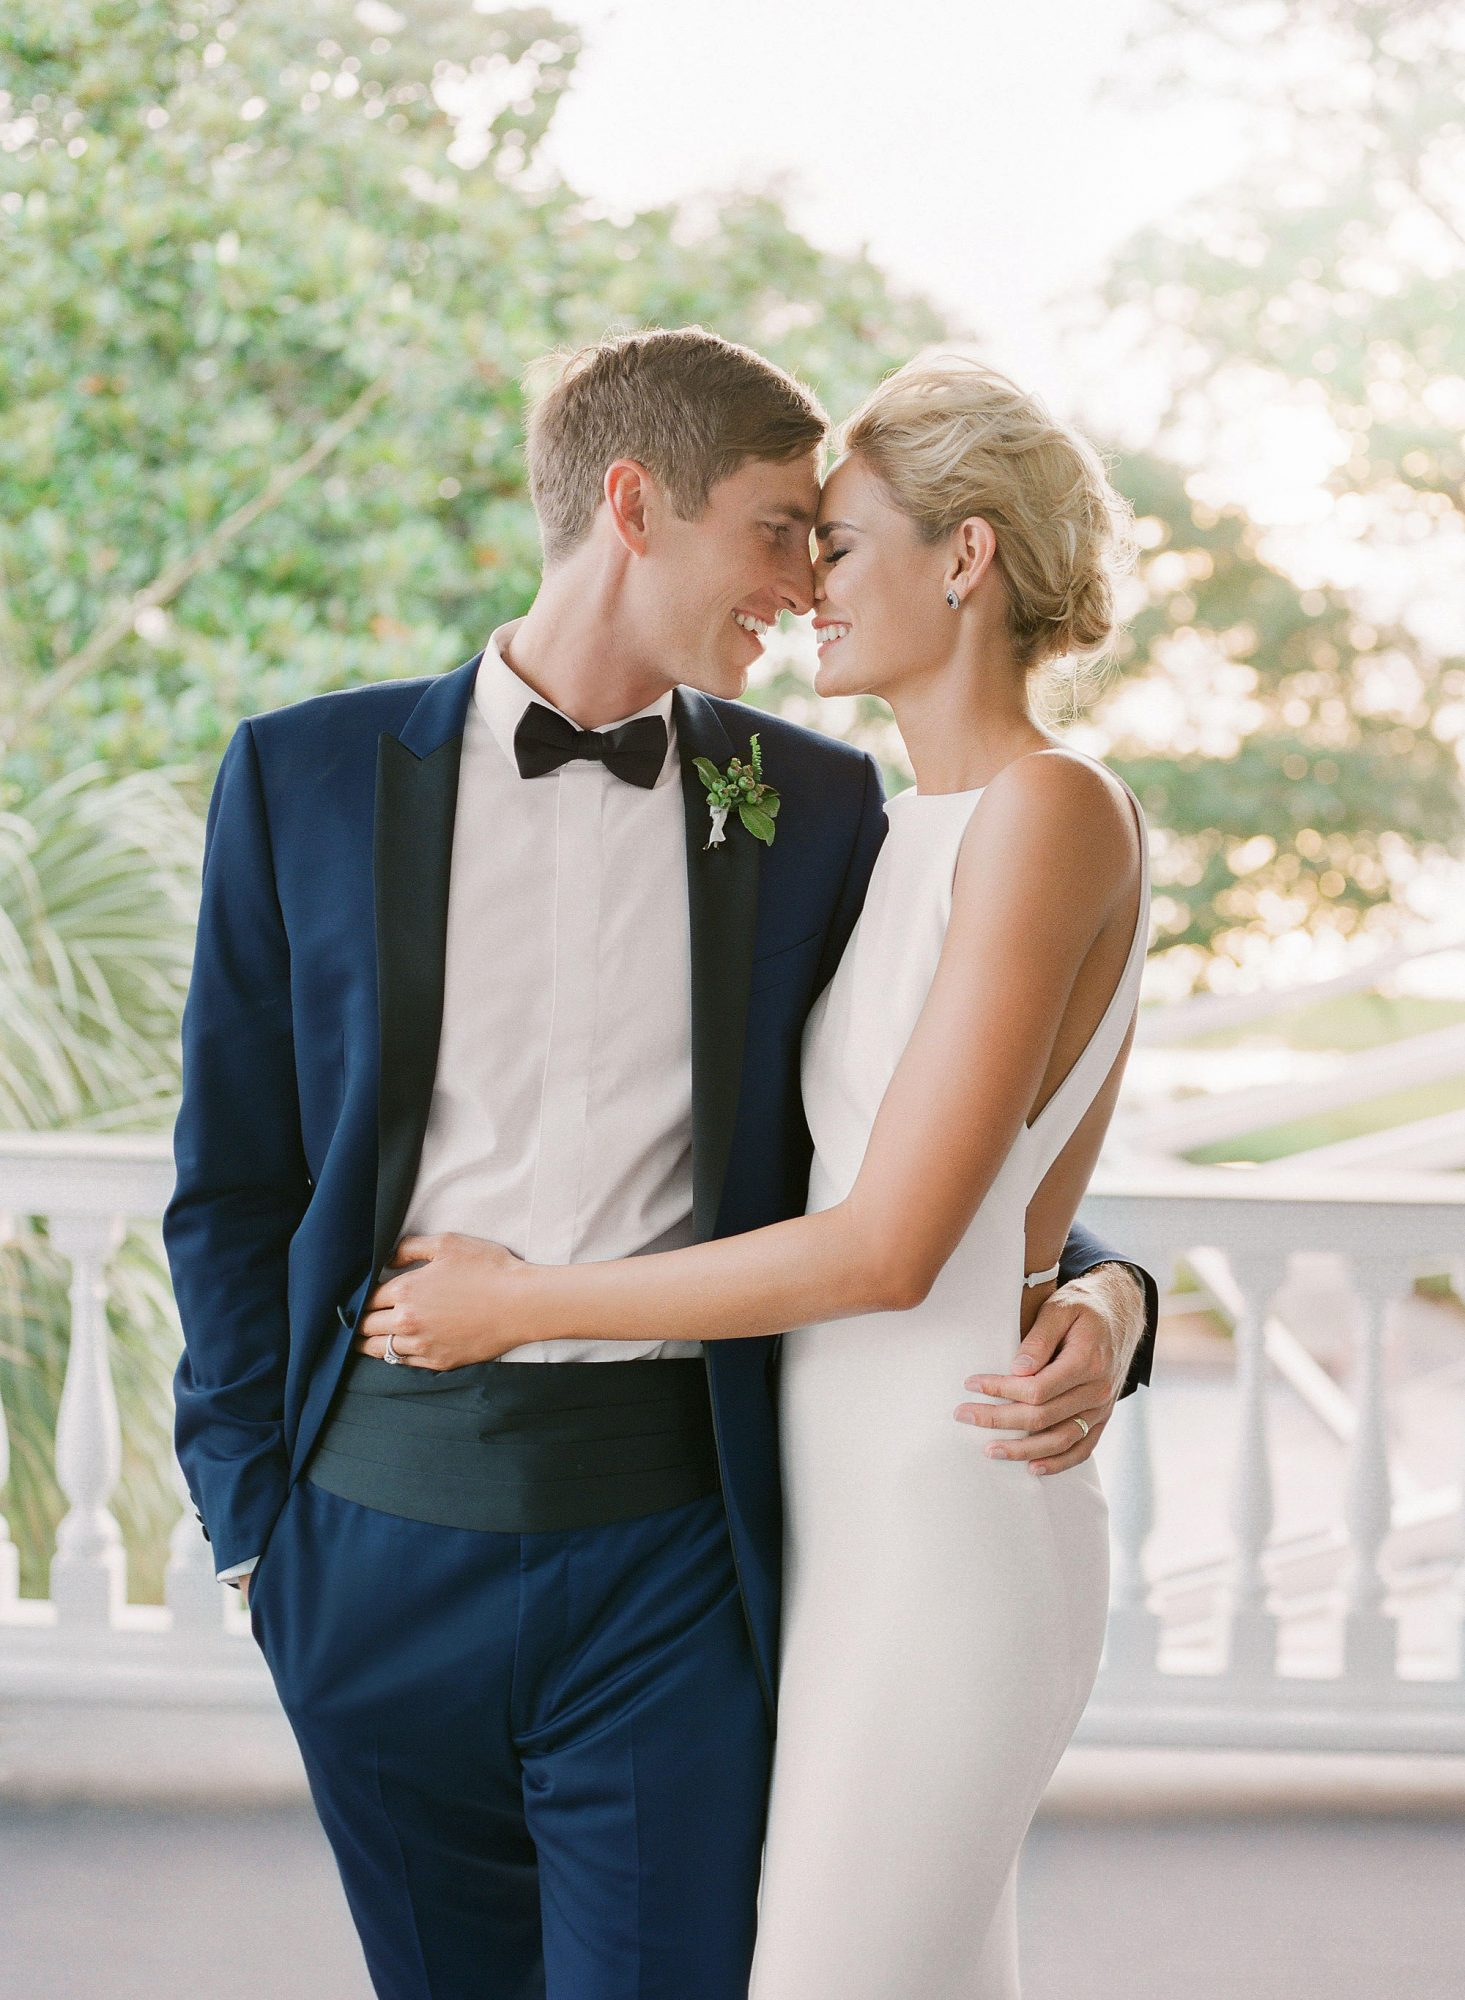 christina matt wedding charleston sc couple embrace